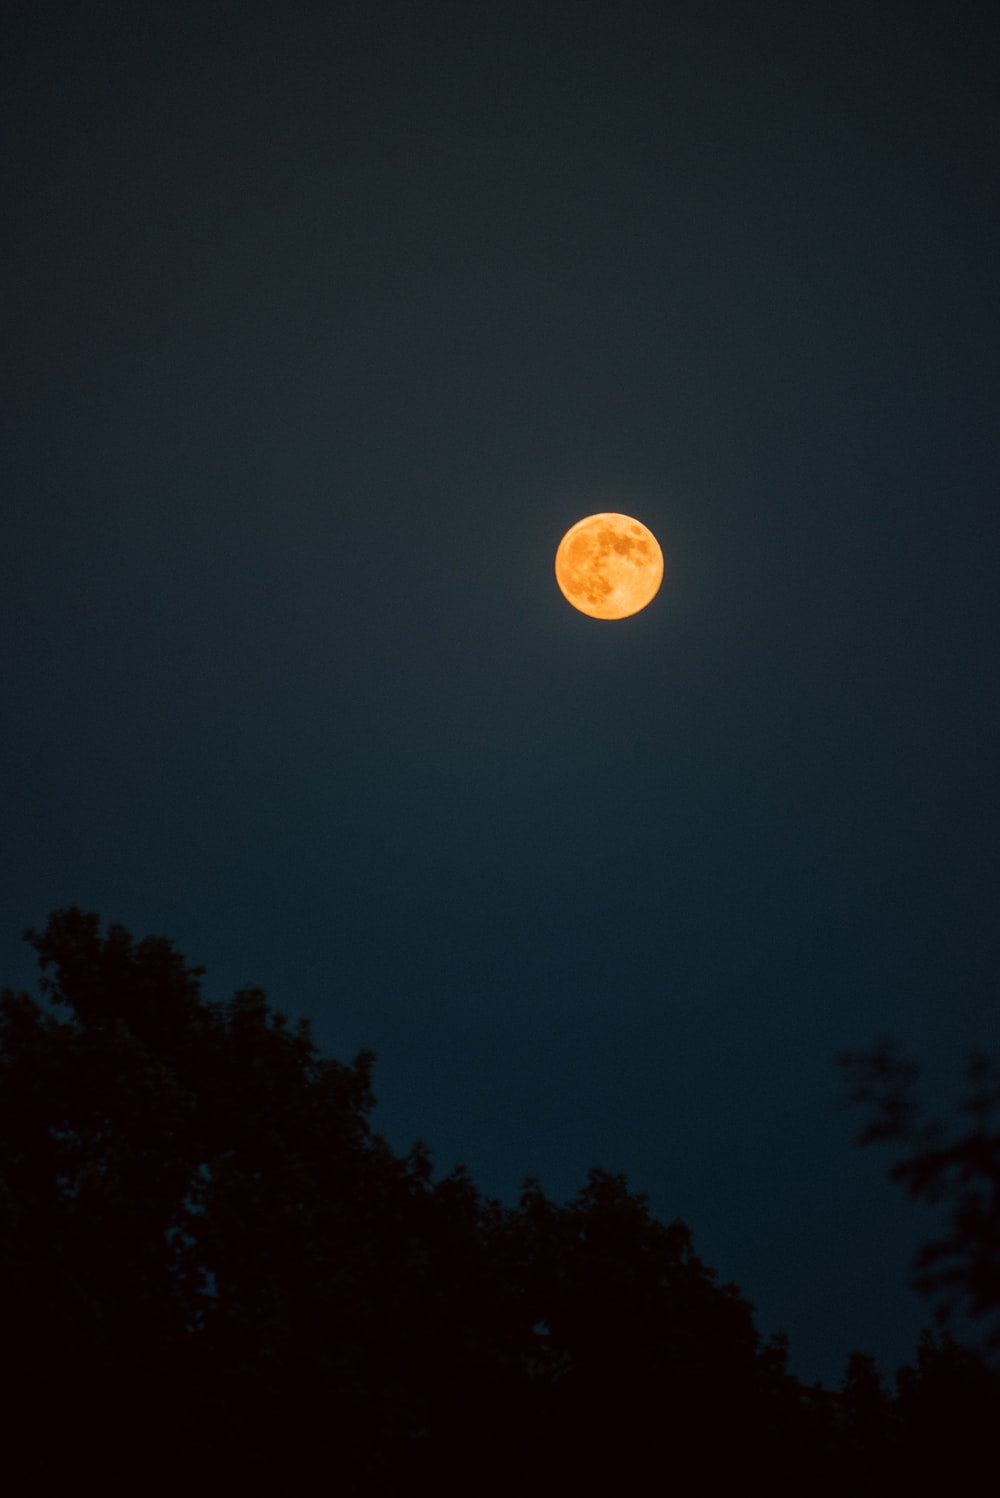 full moon over the trees